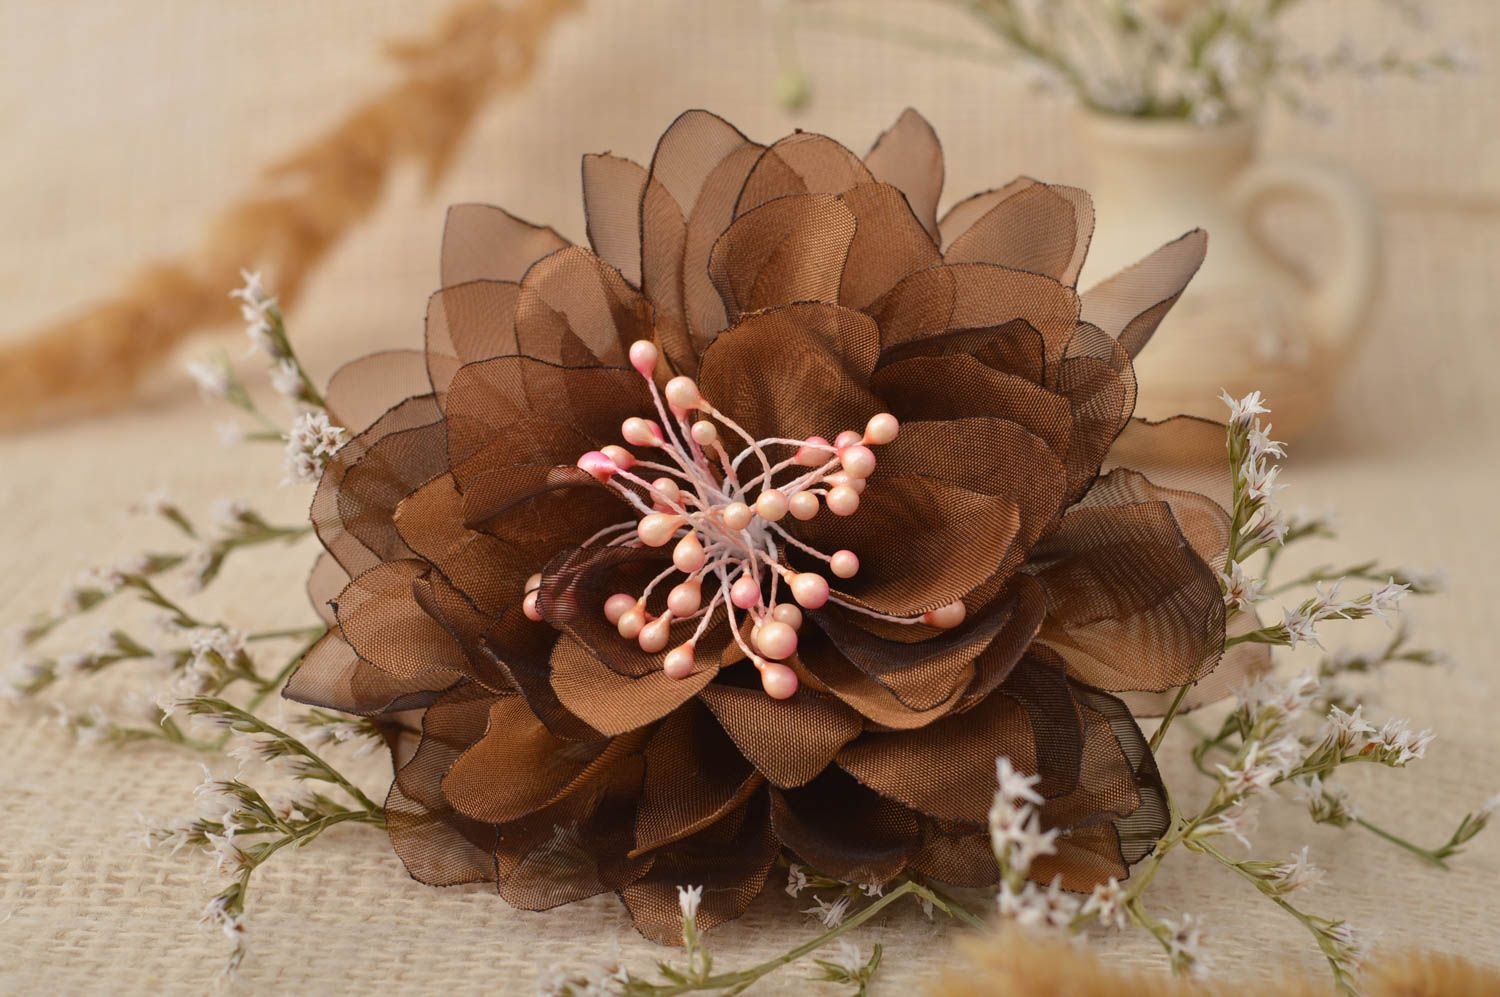 Handmade jewelry flower hair accessories flower brooch flower hair clip  photo 1